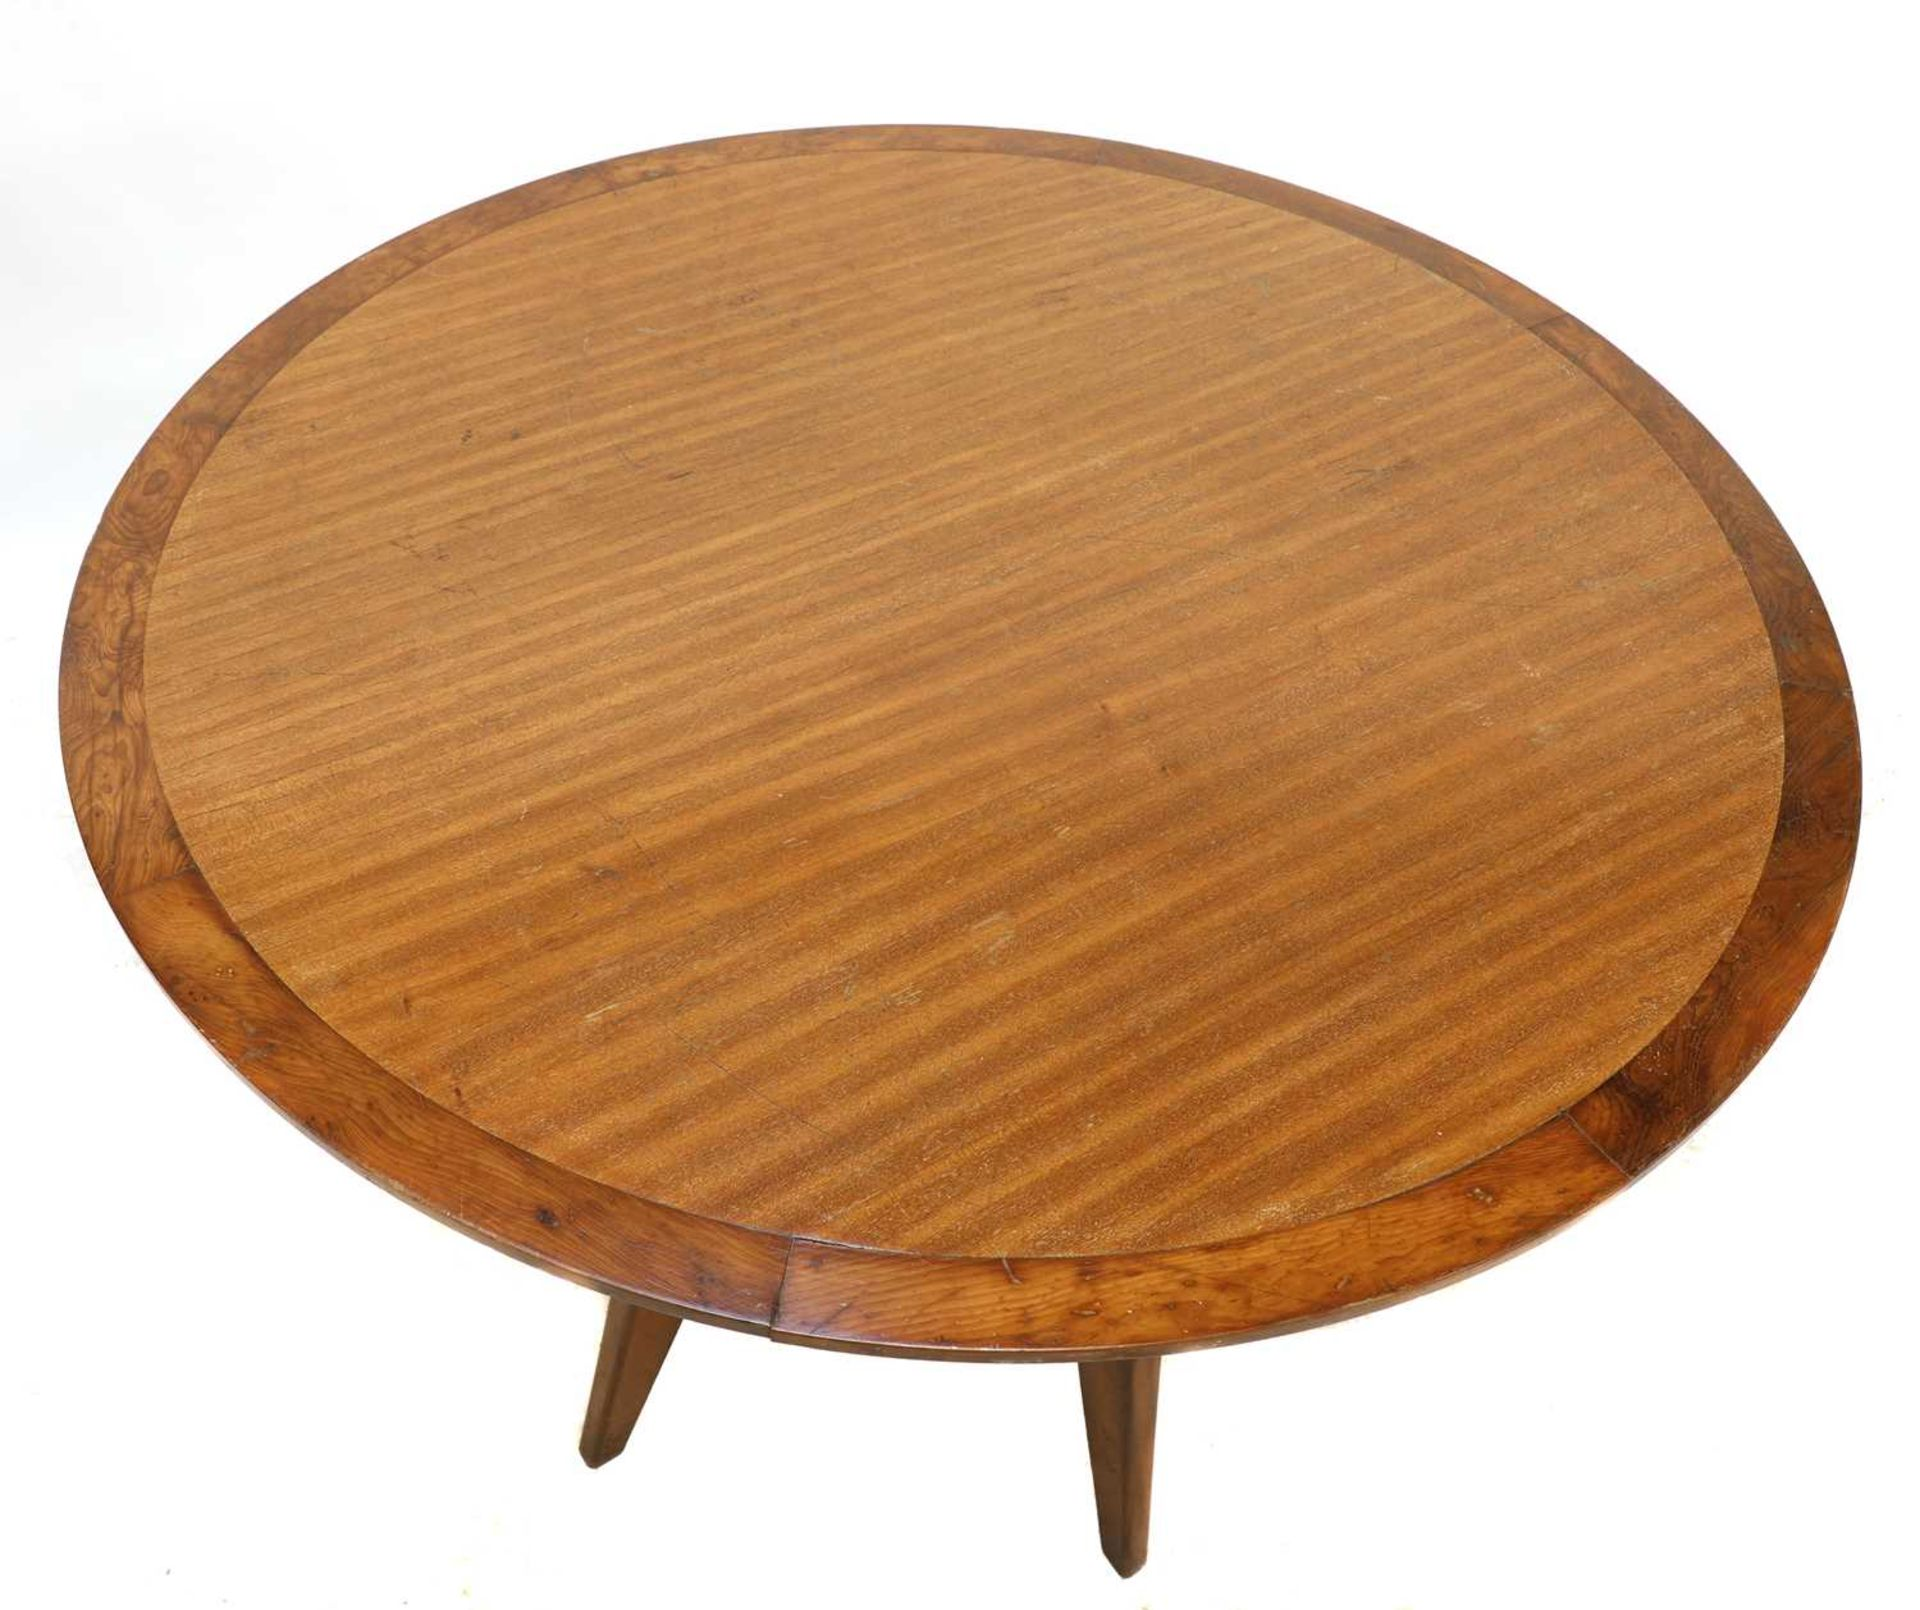 A teak and yew wood centre table, - Image 2 of 2